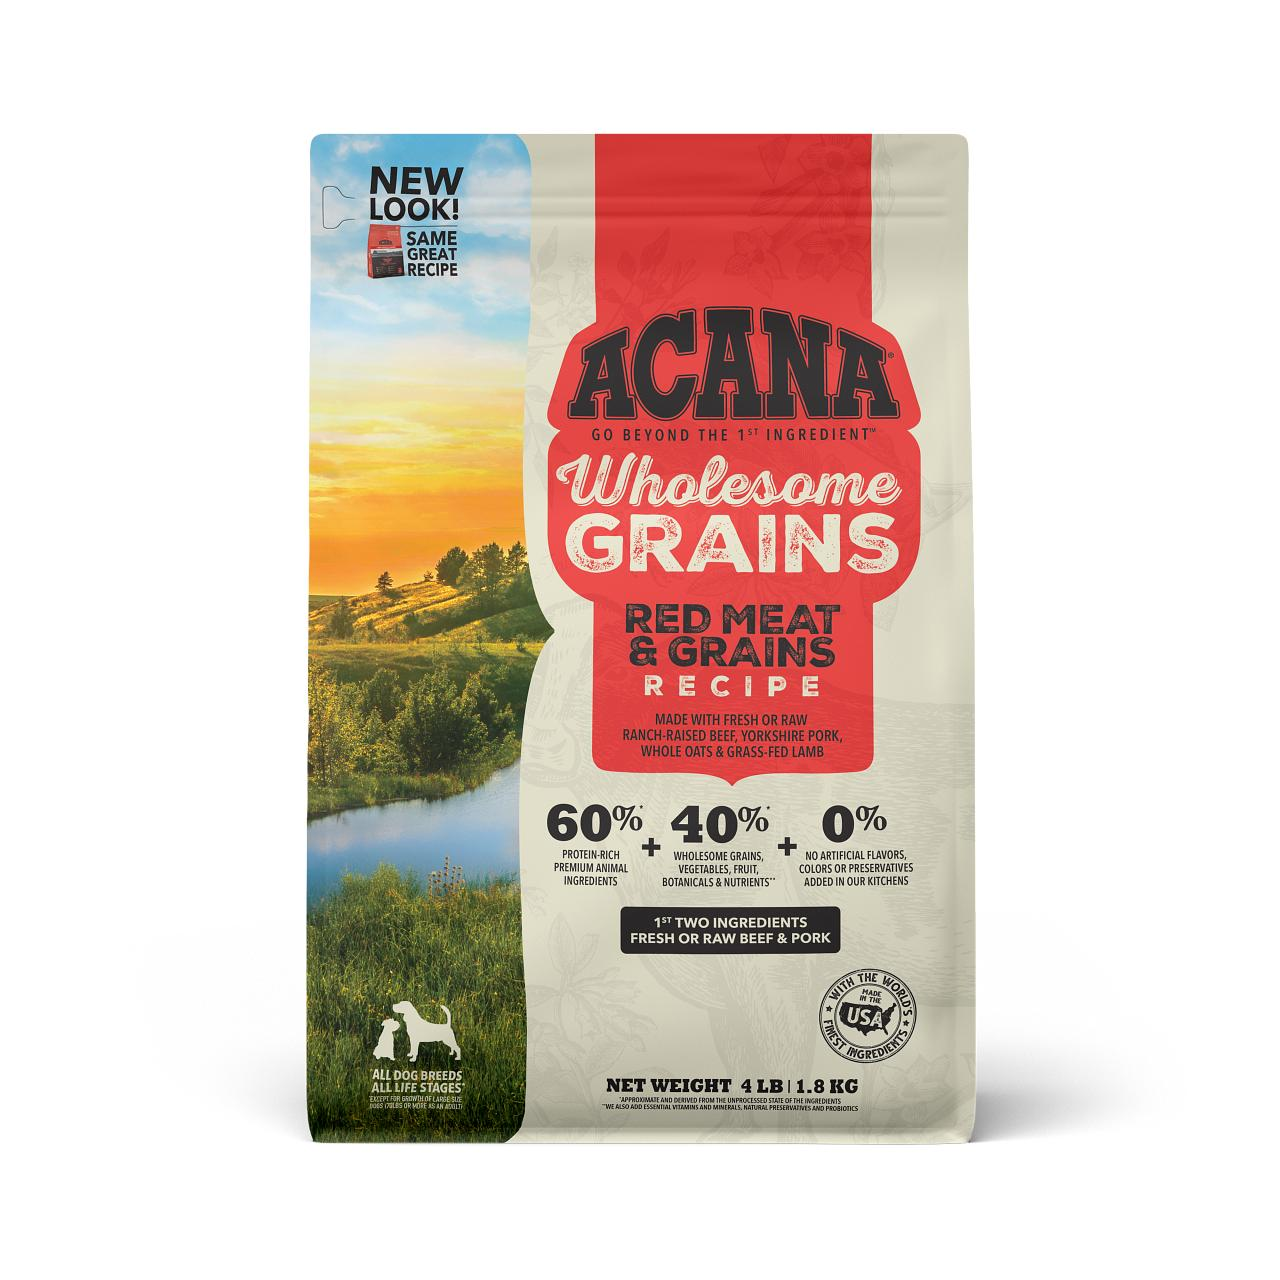 ACANA Wholesome Grains Red Meat & Grains Dry Dog Food, 11.5-lb